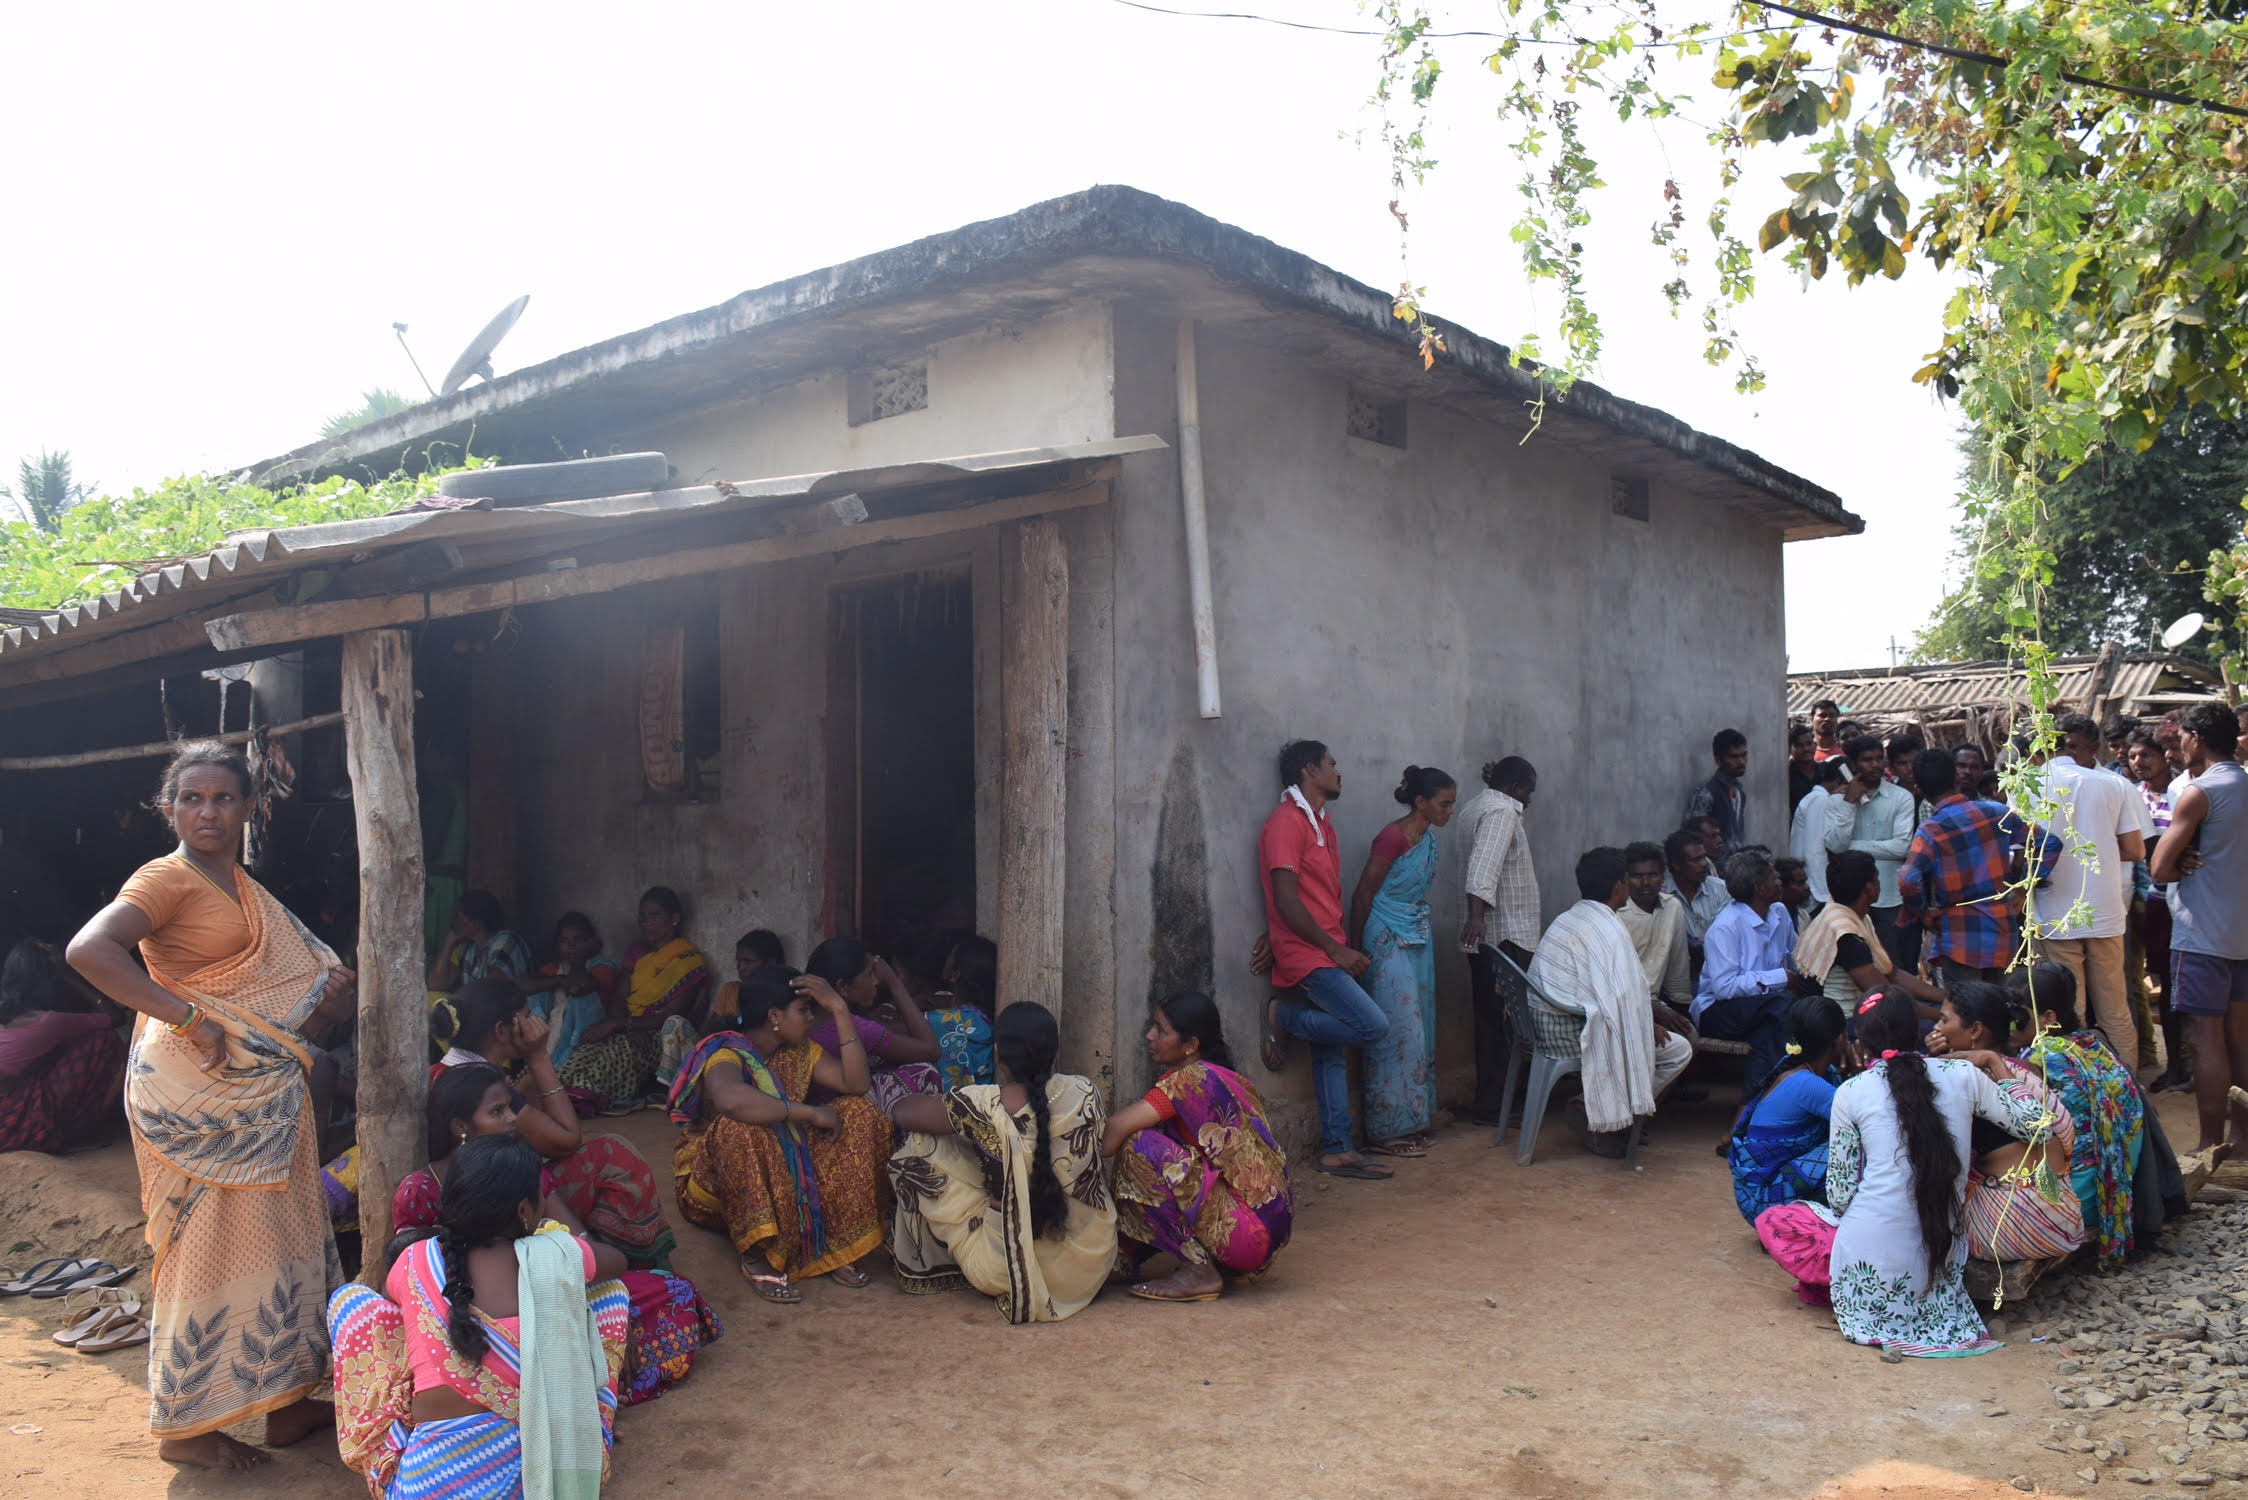 Relatives of Etti Seenu gather at his house in Marigudem village. Seenu was cremated on Friday. Credit: Sukanya Shantha